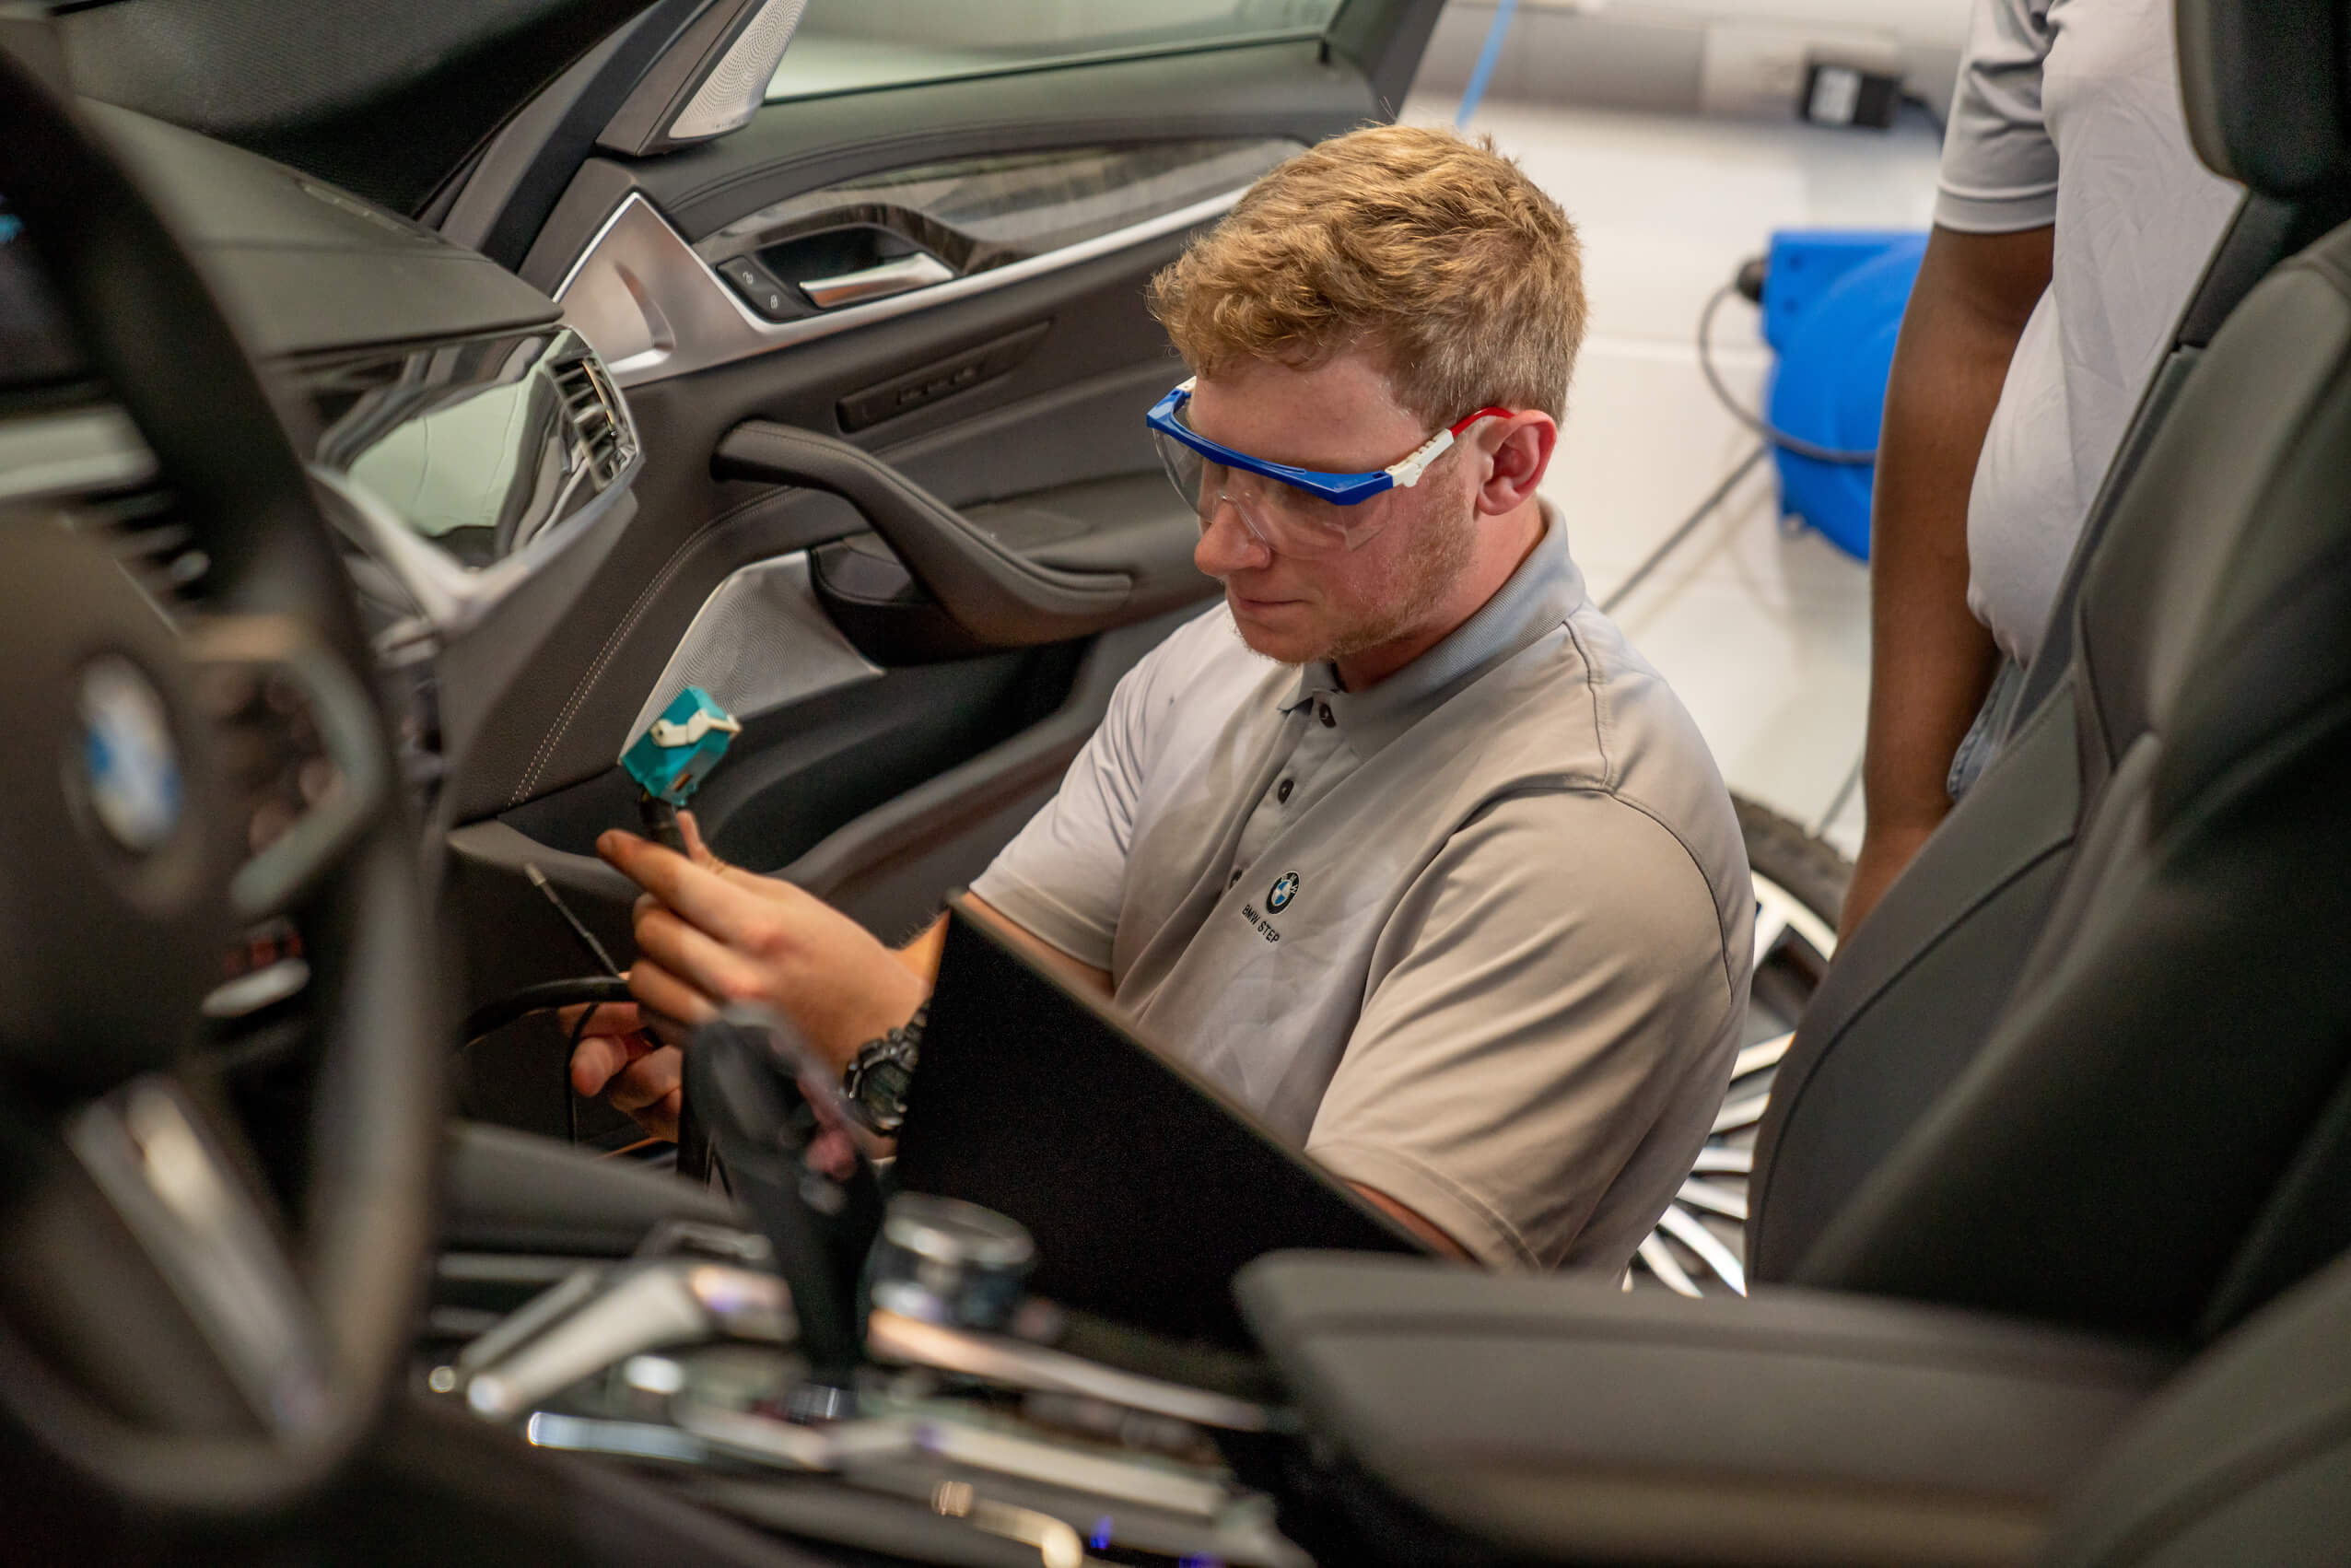 A male technician examines wiring within a vehicle while another male technician observes.